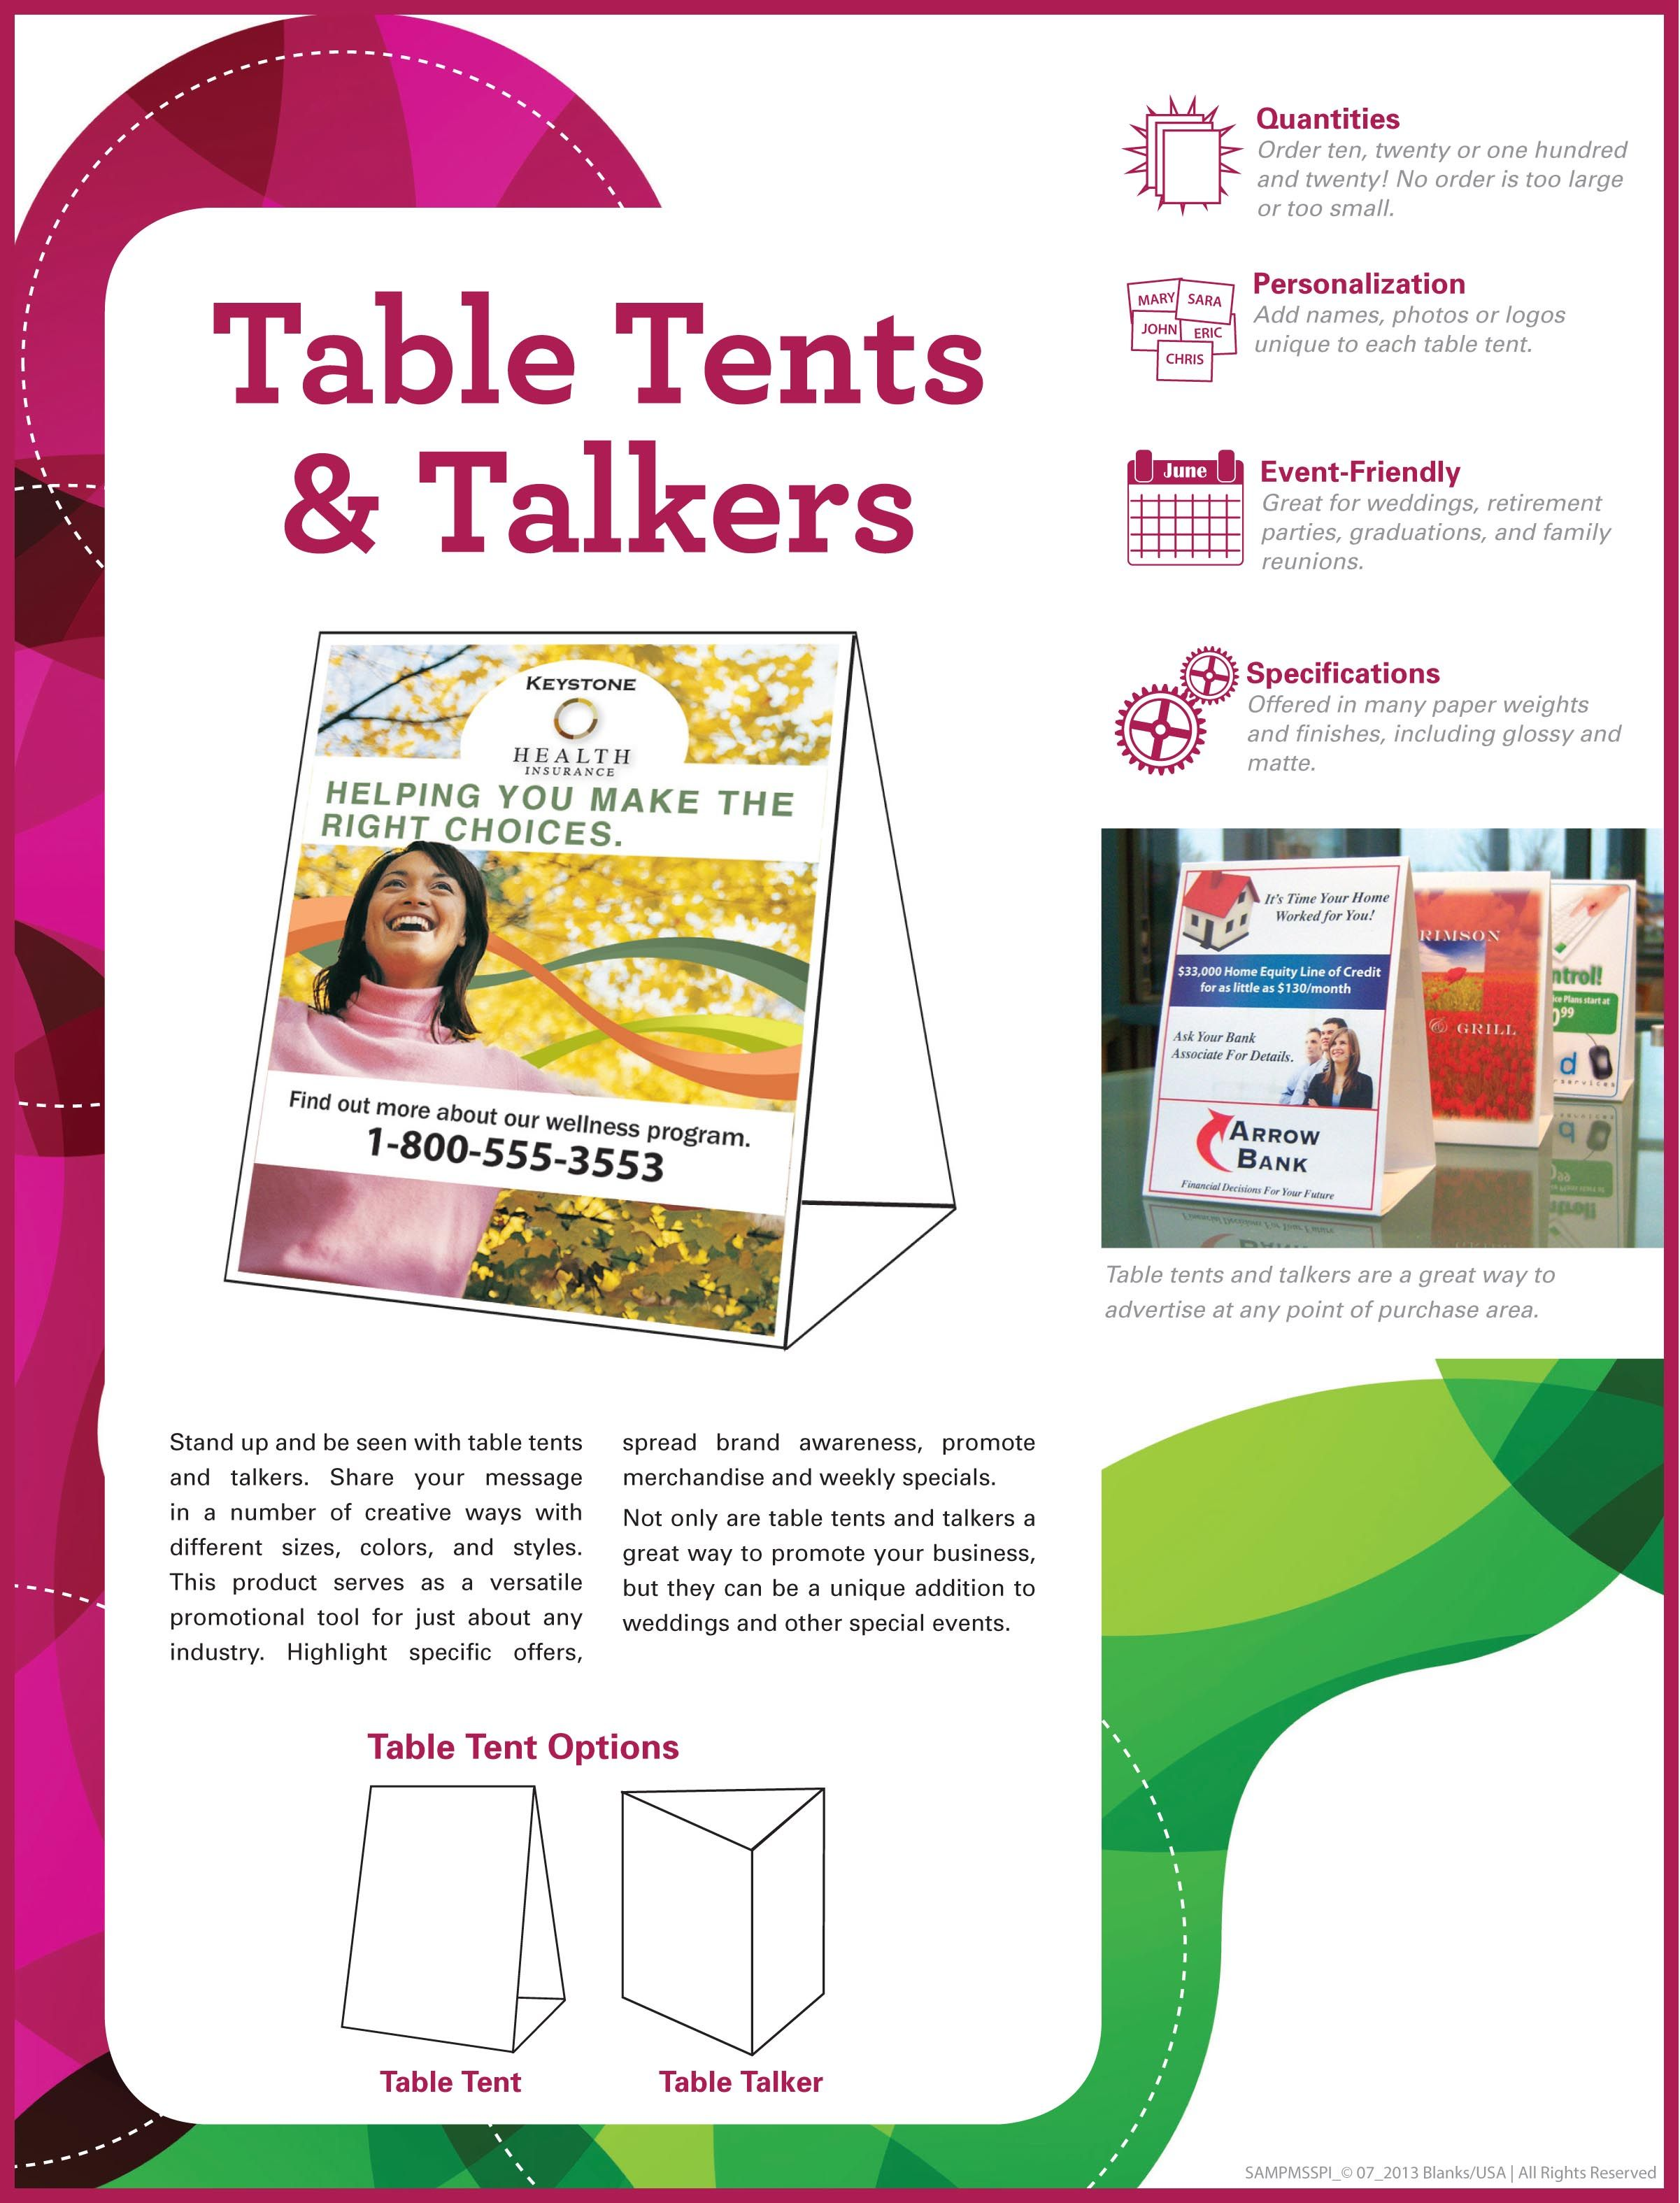 Reach every table through table tent signs